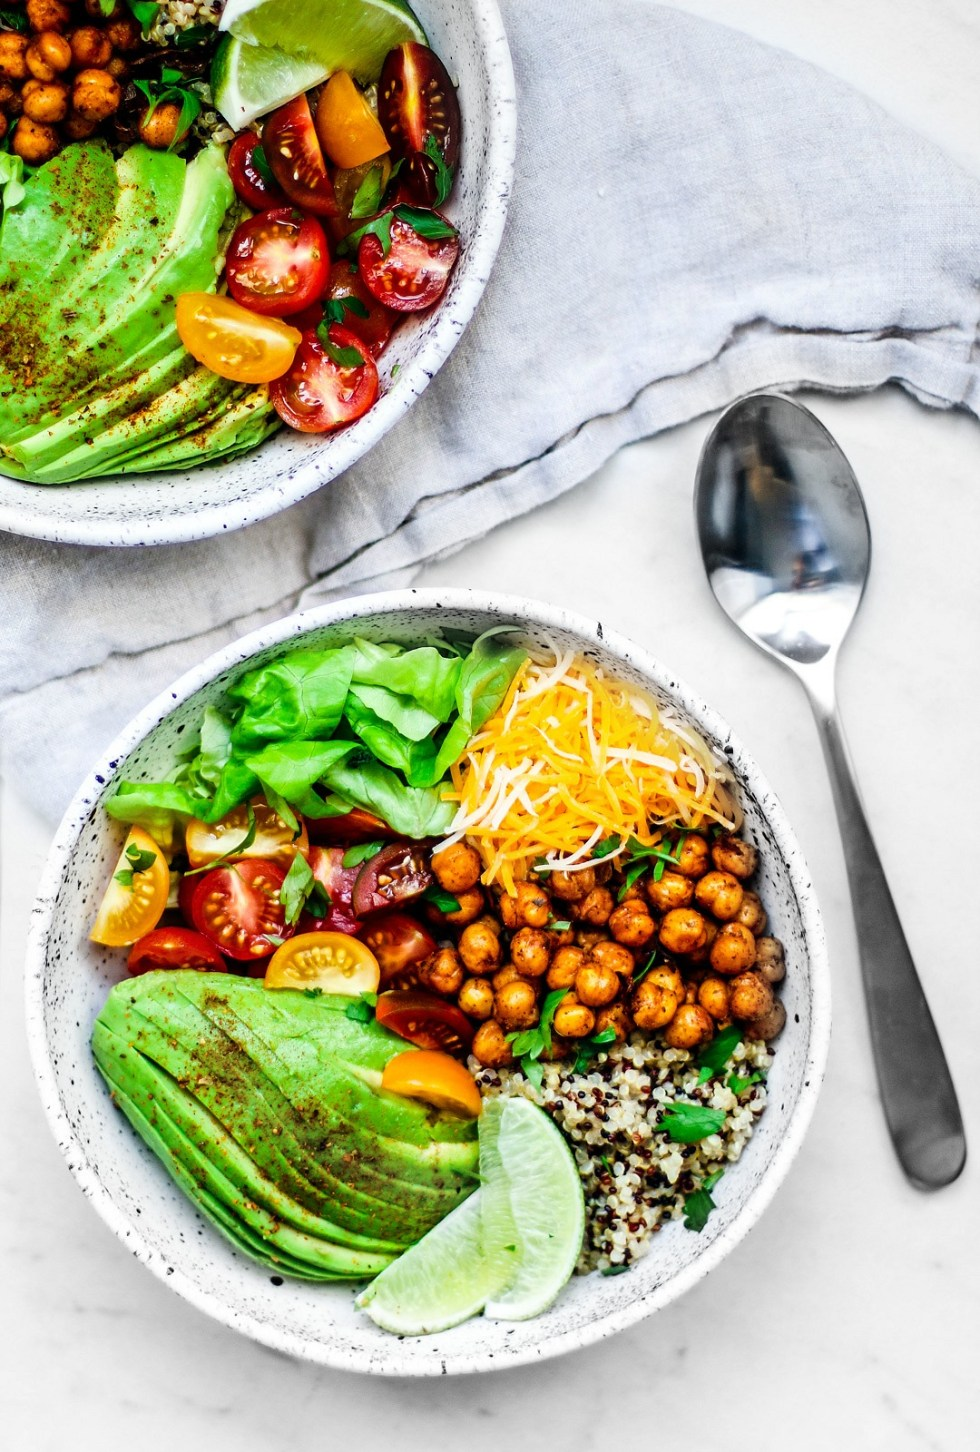 Taco Grain Bowls full of colorful ingredients.